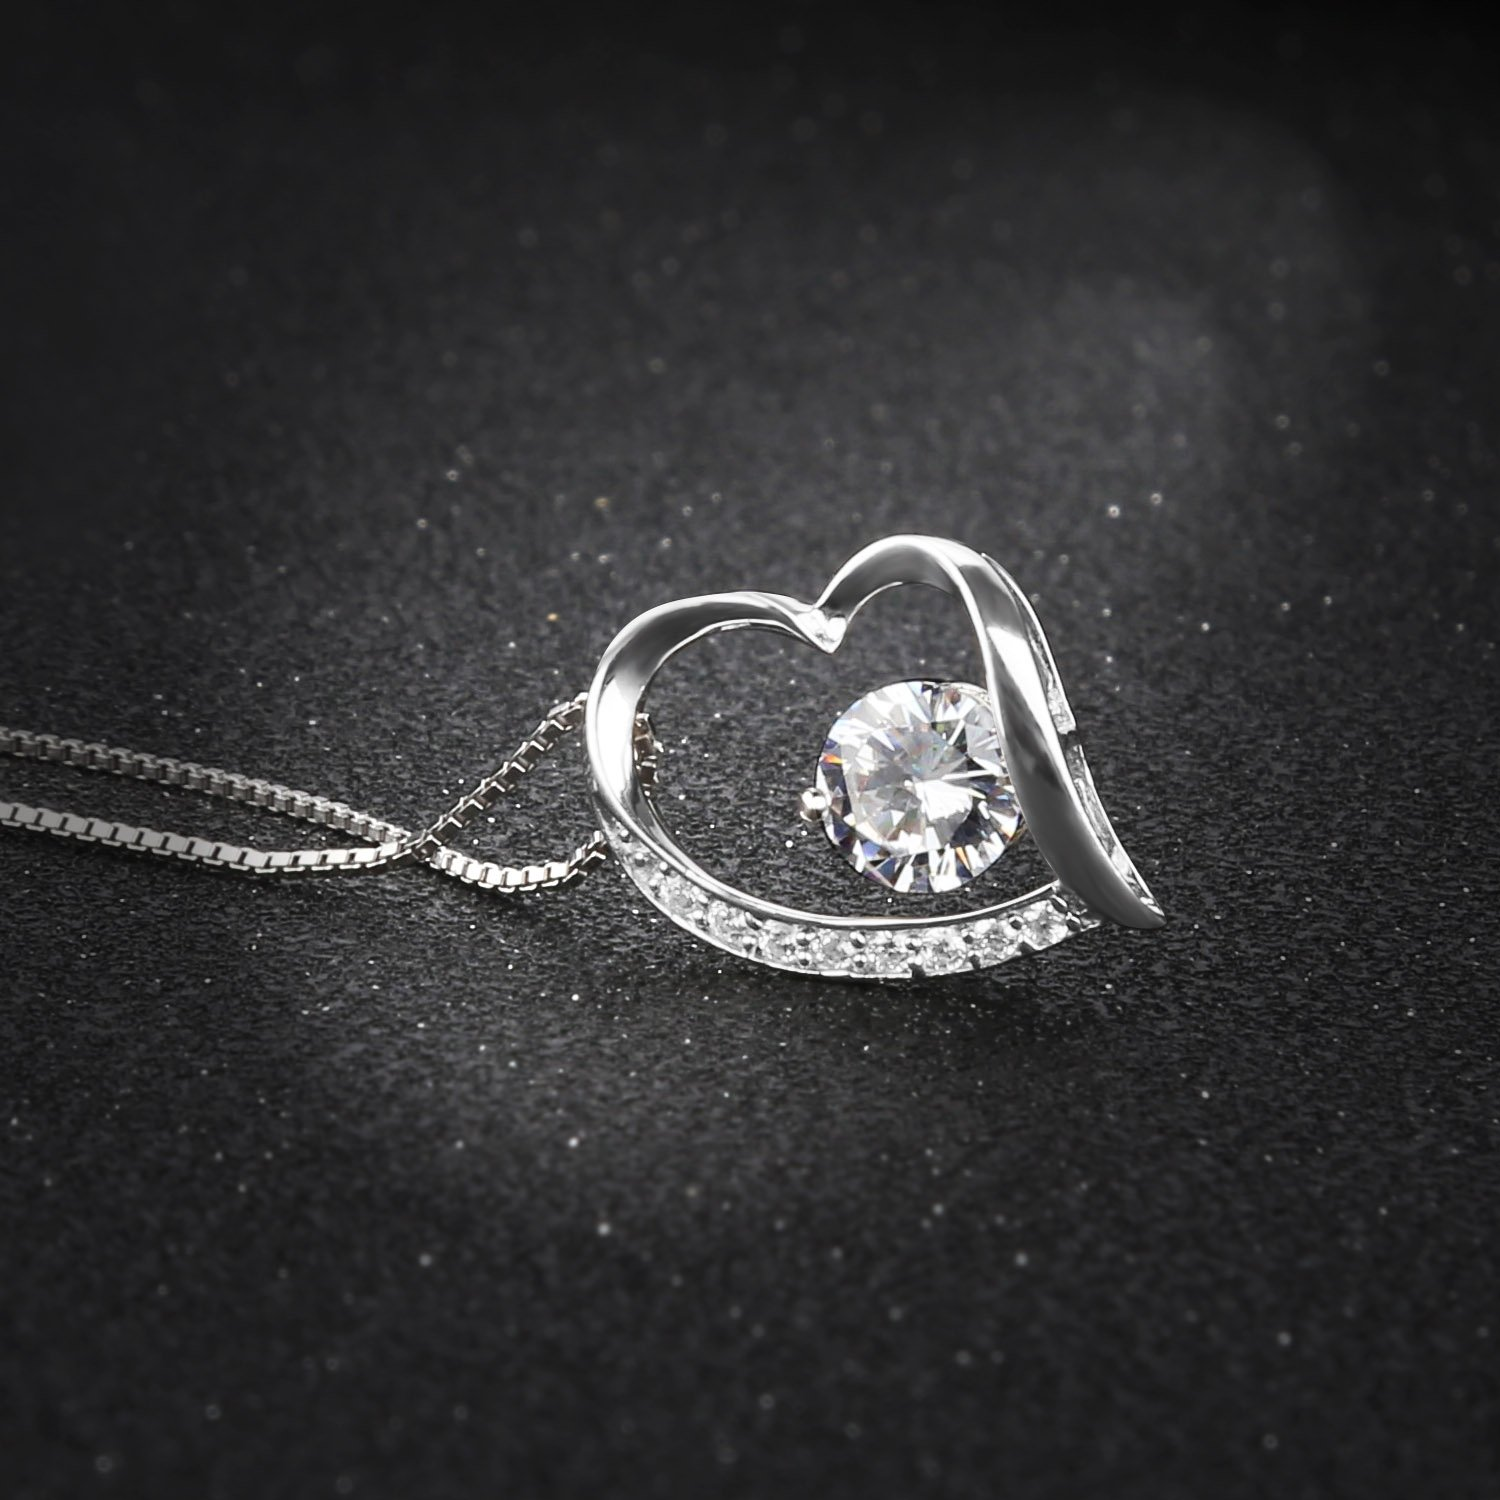 Pealrich 925 Sterling Silver Forever Love Heart Diamond Pendant Necklace